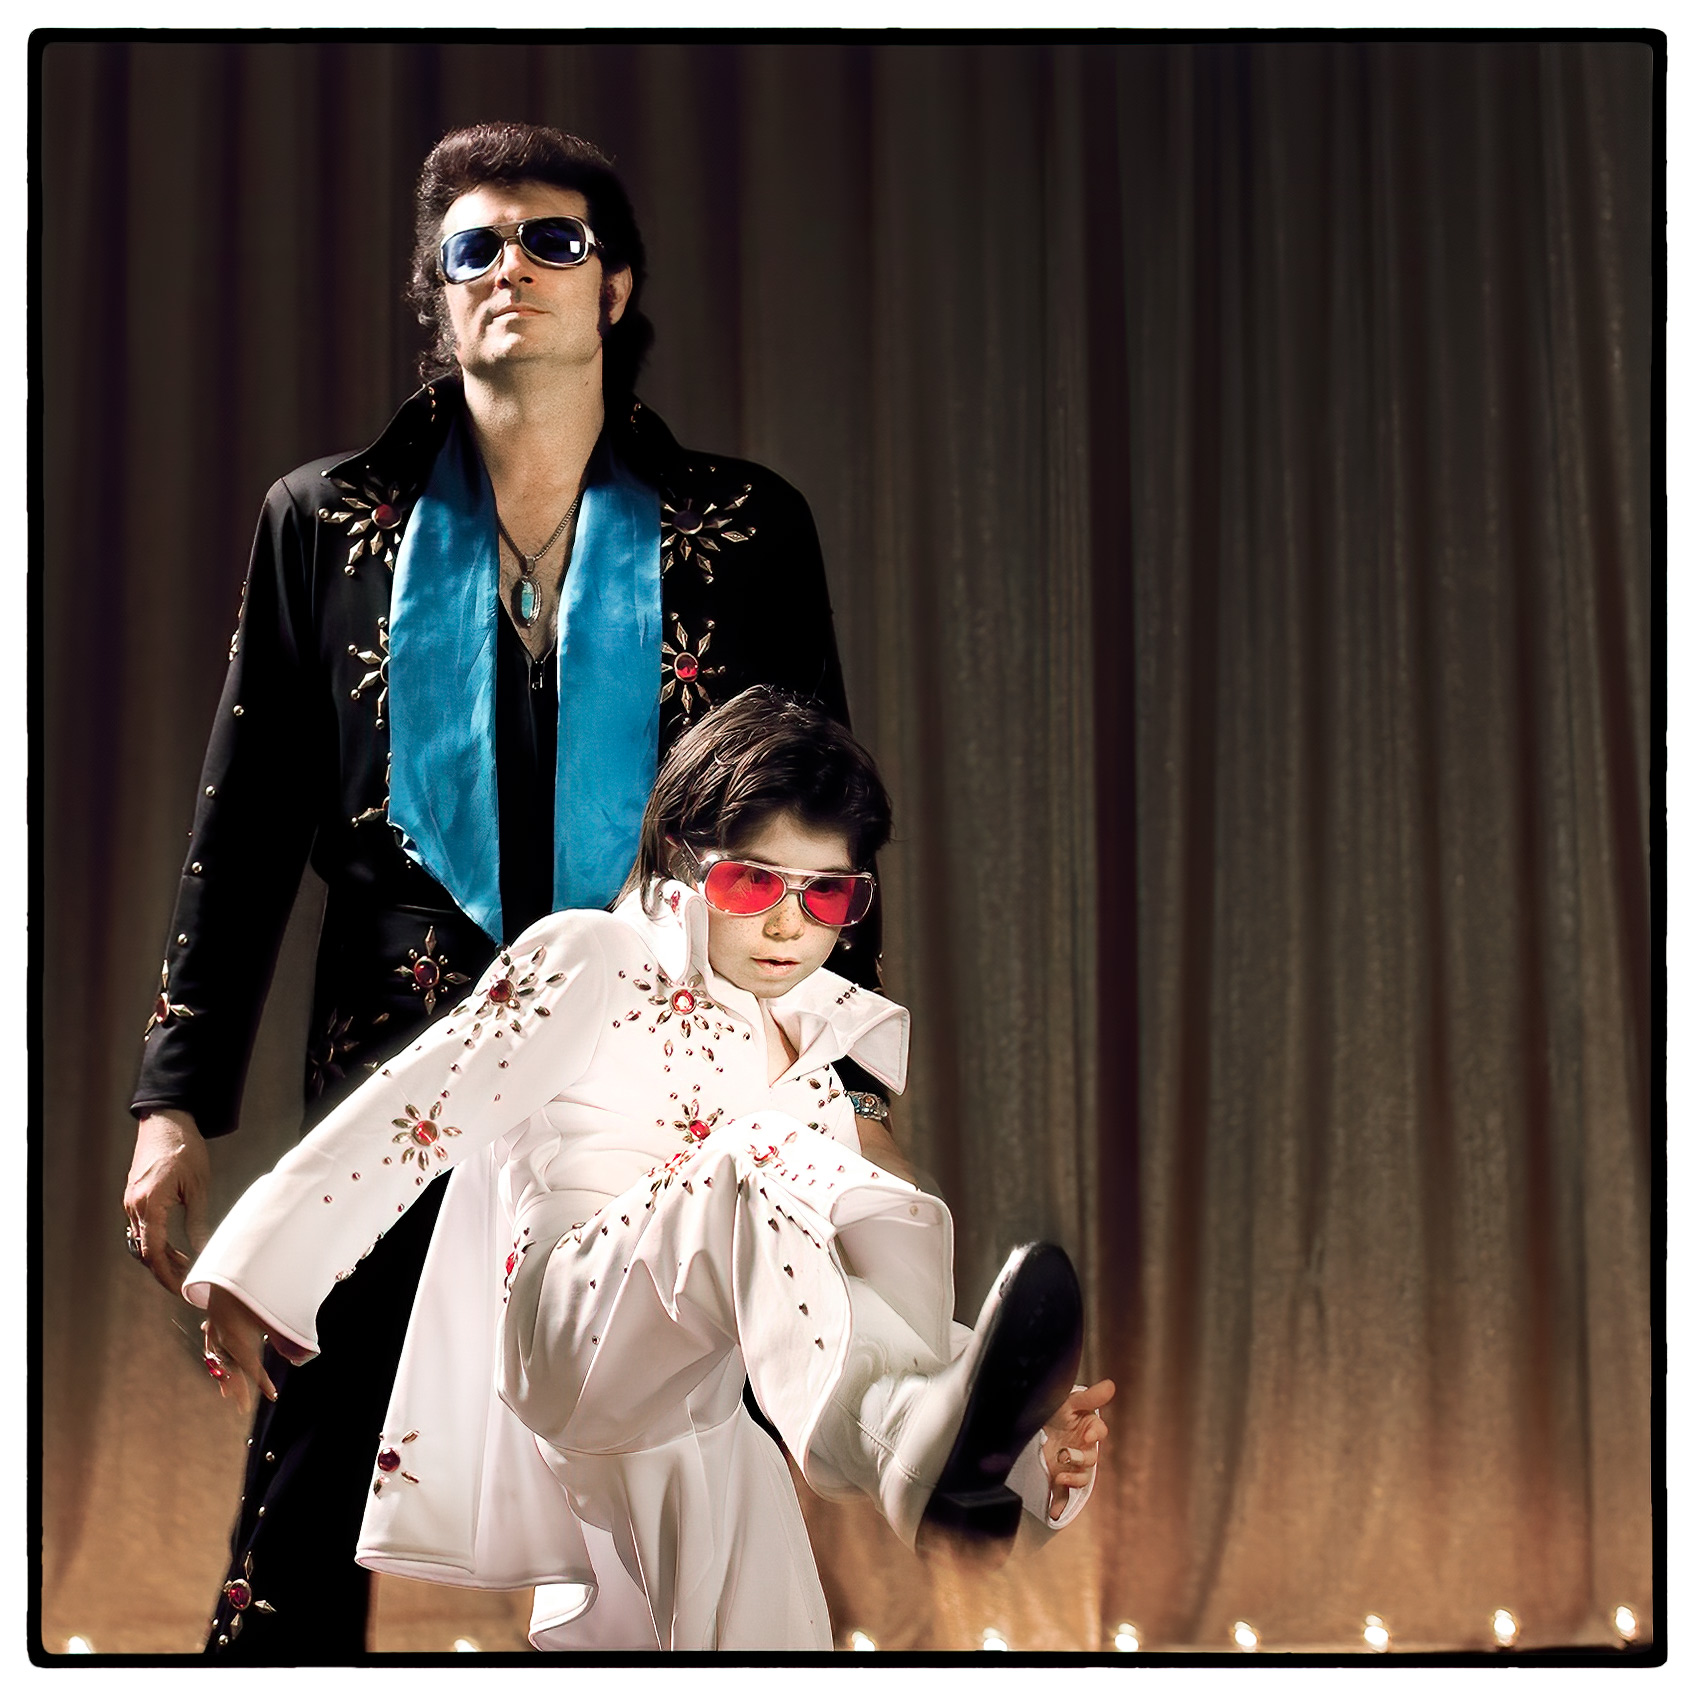 a-boy-and-a-man-who-are-elvis-impersonators-in-las-vegas